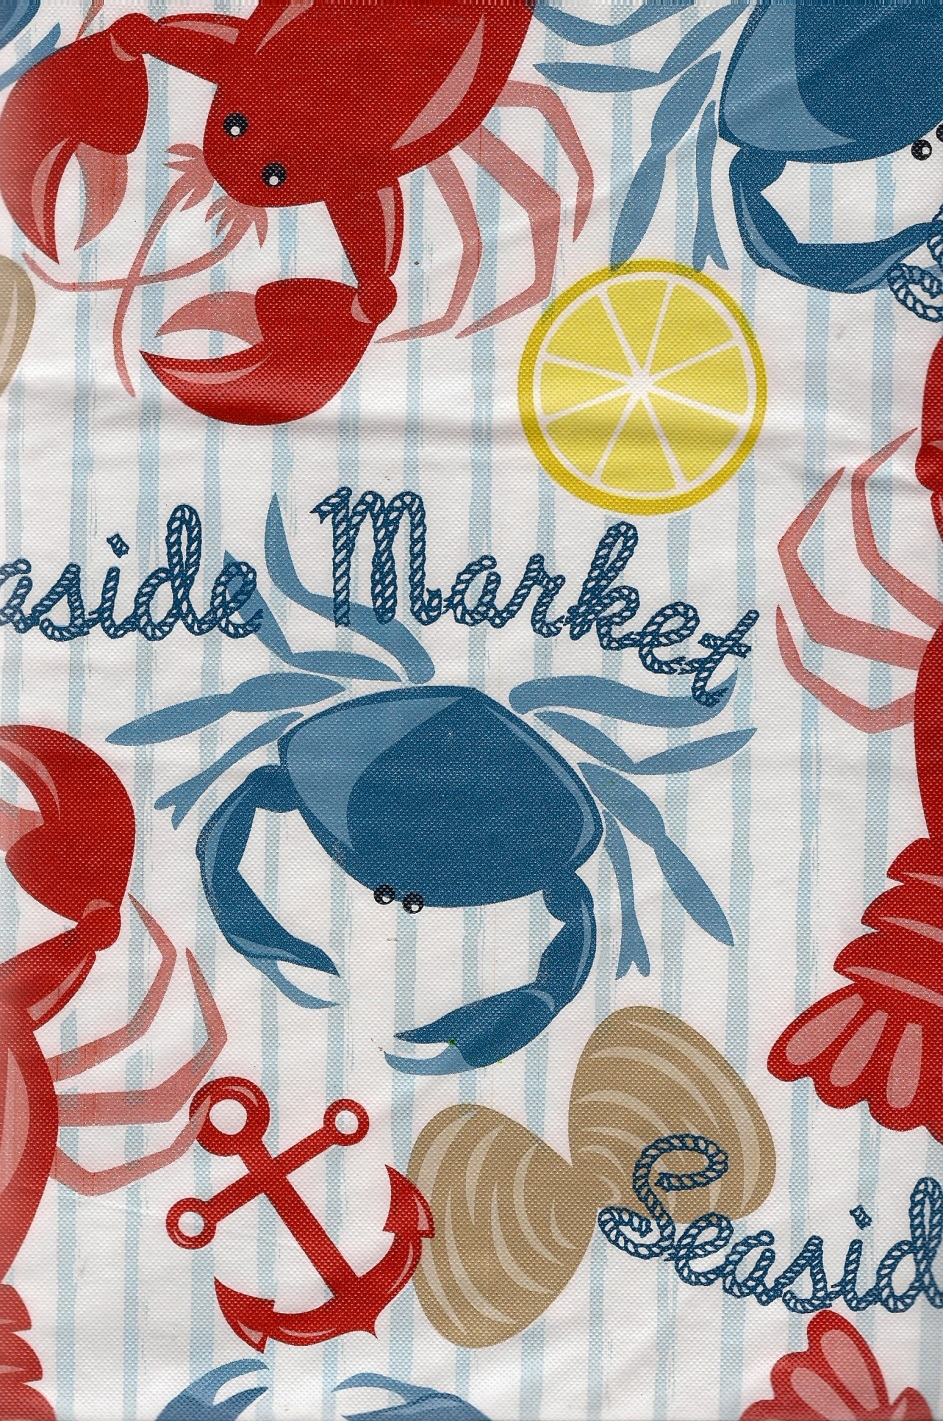 Clambake Lobster Blue Crab Seaside Market Vinyl Tablecloth flannel back 52 x 70